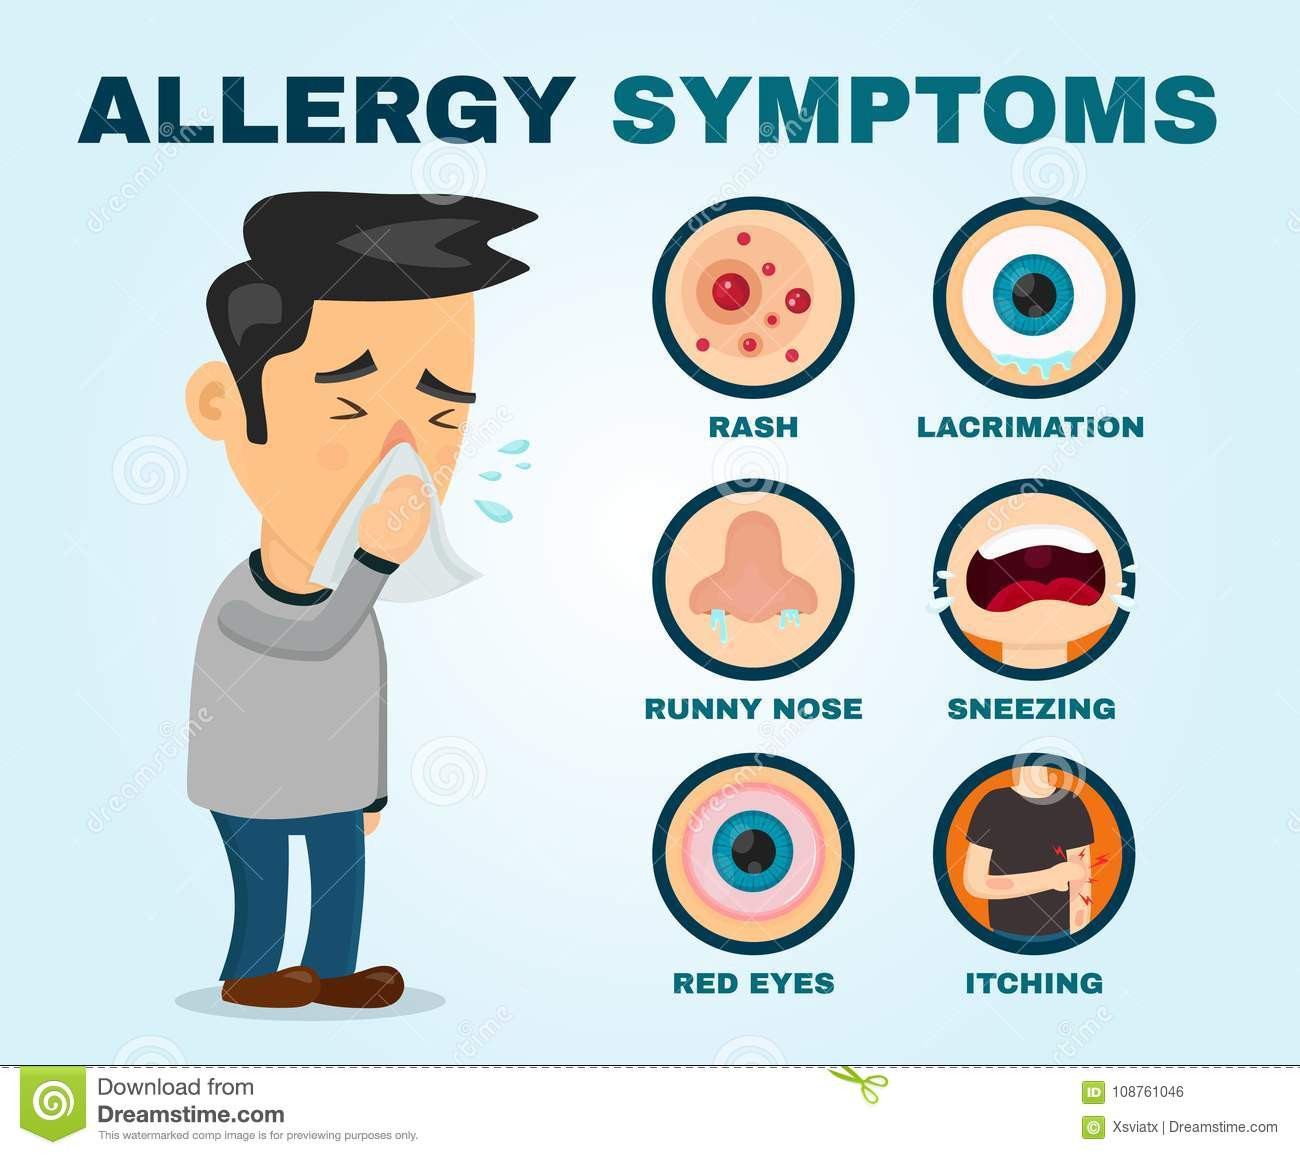 Allergy symptoms problem infographic. Vector